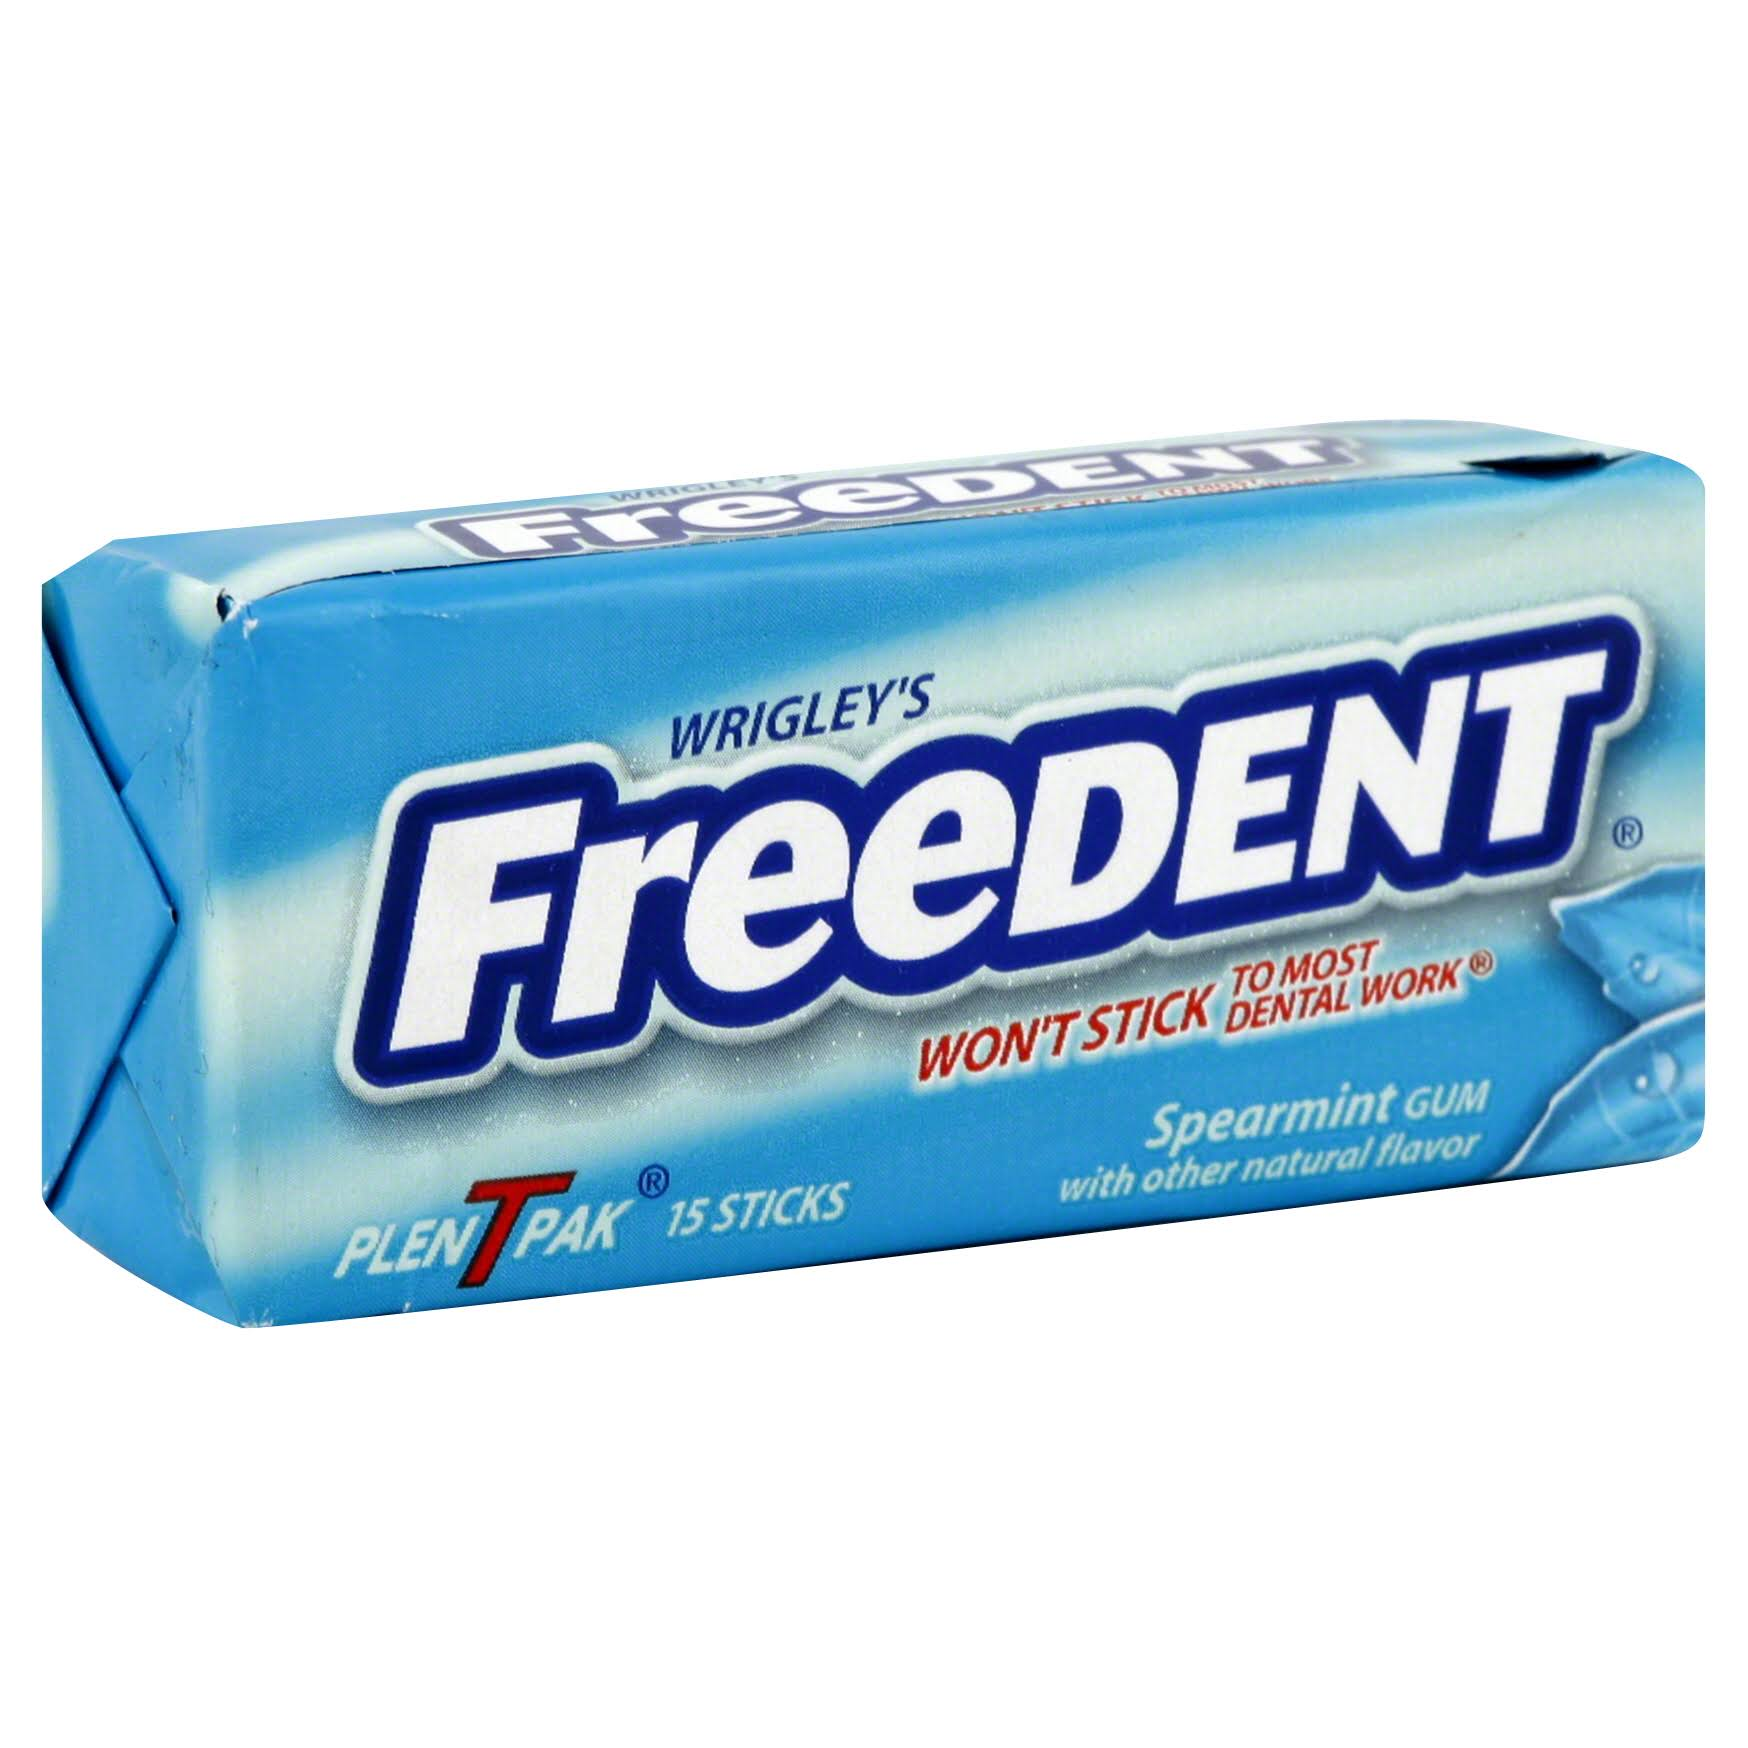 Wrigley's Freedent Gum - Spearmint, 15 Sticks